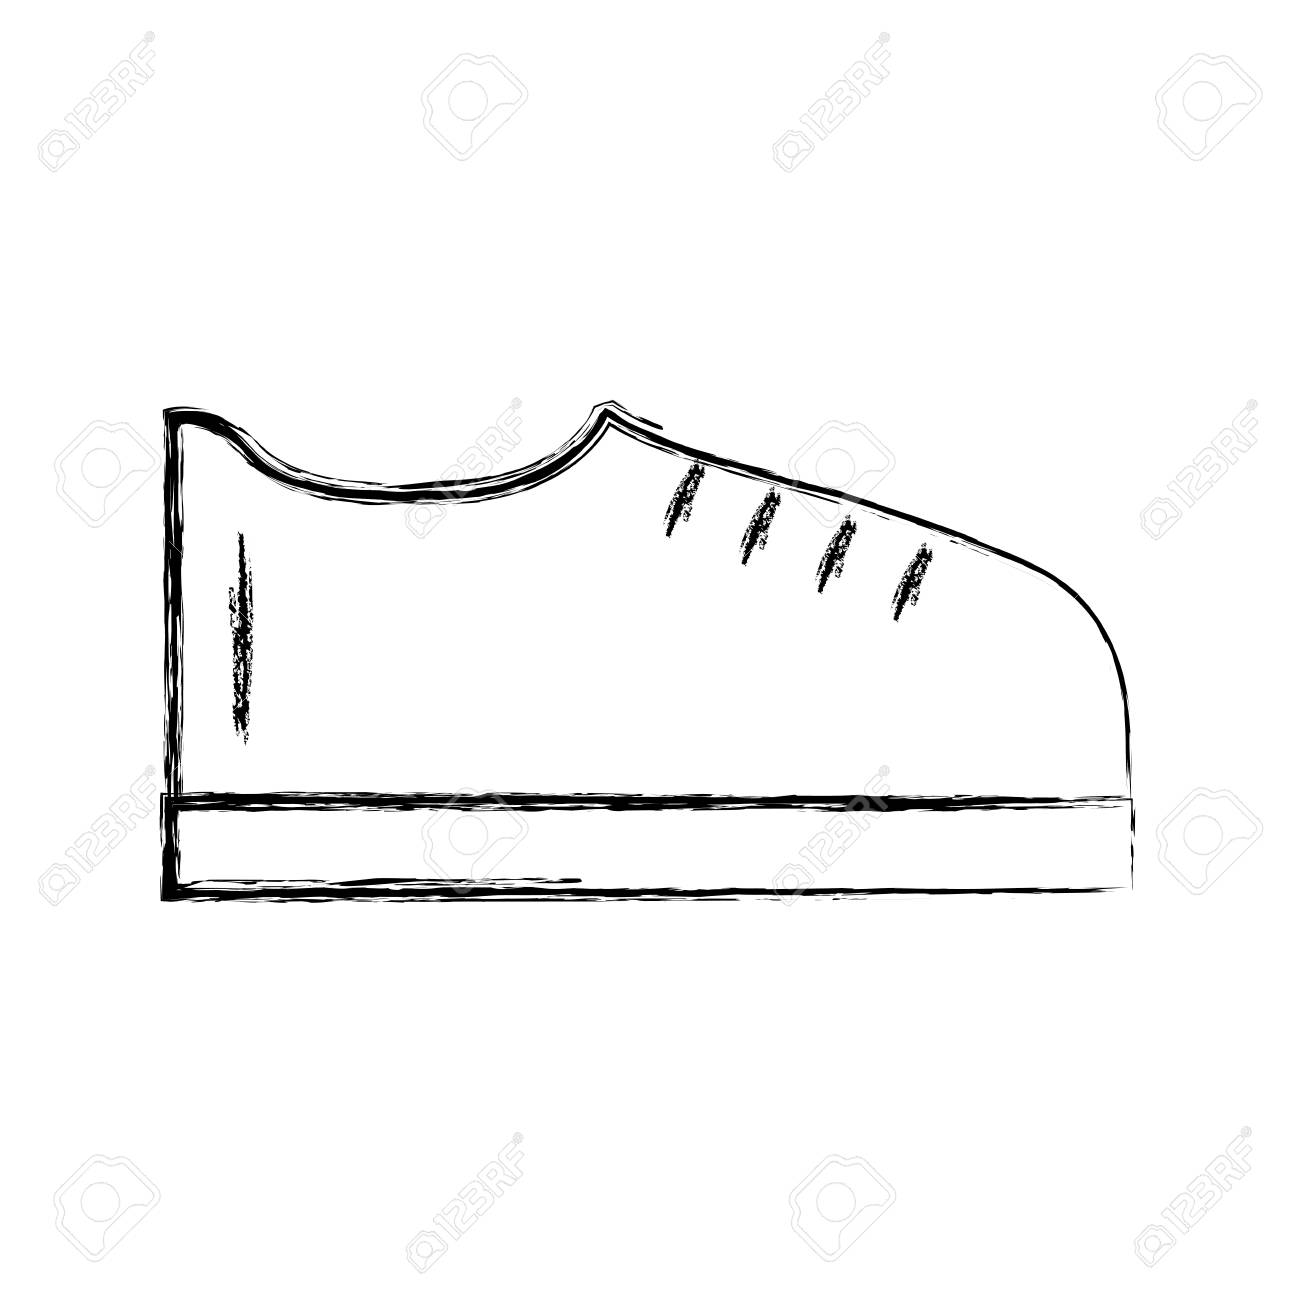 Sketch Draw Shoe Cartoon Vector Graphic Design Royalty Free Cliparts Vectors And Stock Illustration Image 79942856